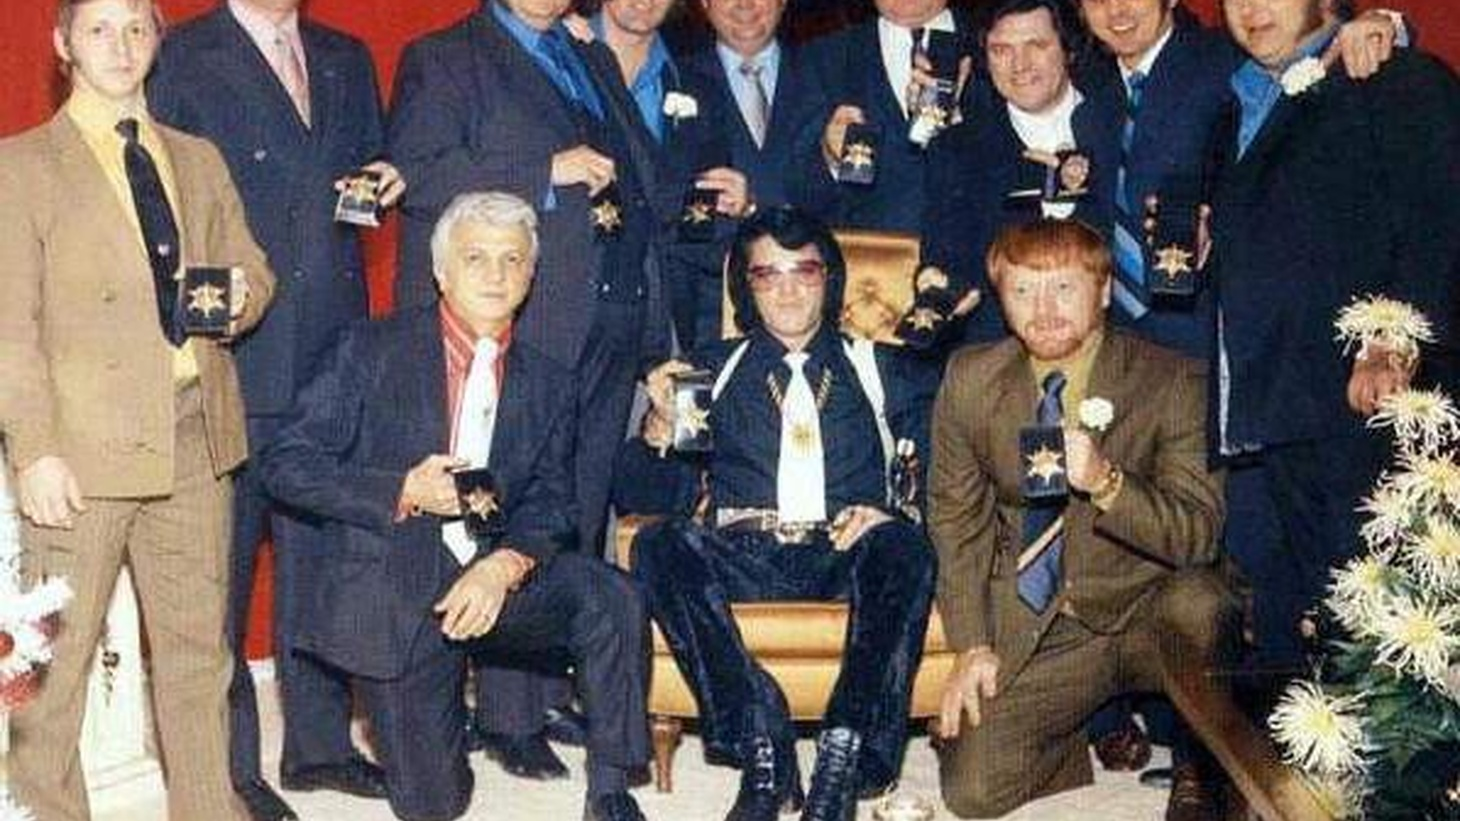 """As the HBO series Entourage begins its seventh season, we find out what goes on inside a real-life entourage with Jerry Schilling, a member of Elvis Presley's famed """"Memphis Mafia."""" Like the fictional entourage, Elvis' inner circle of homeboys lived with """"The King"""" and accompanied him everywhere as he negotiated life in the entertainment business."""